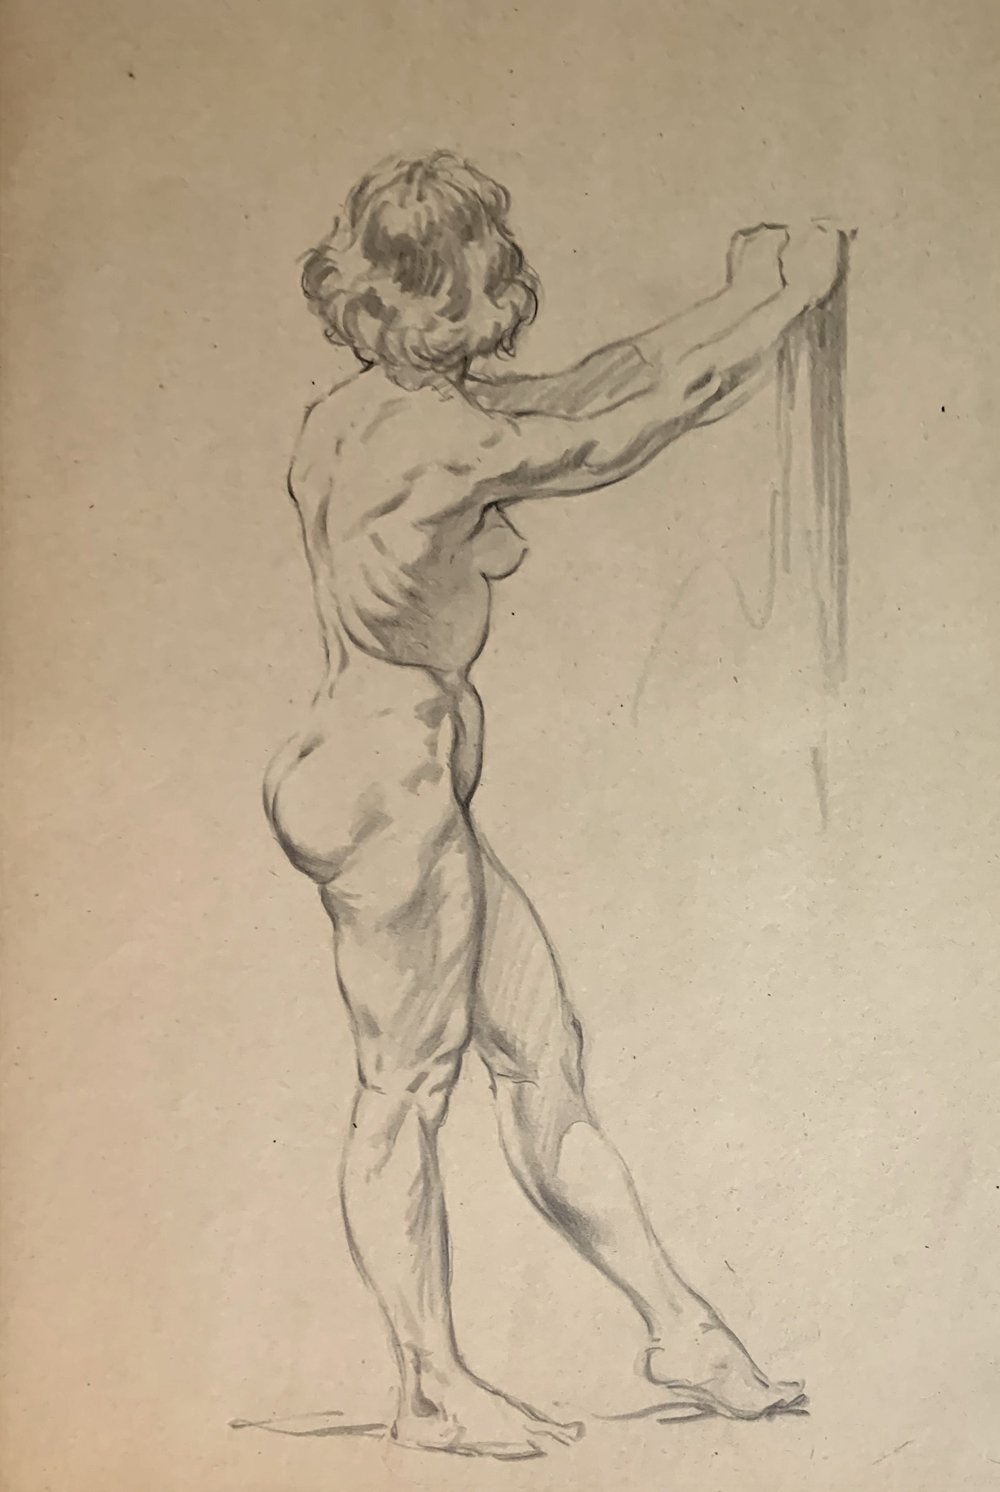 Very Detailed Large Sexy Side View Nude Female Drawing (1950s)